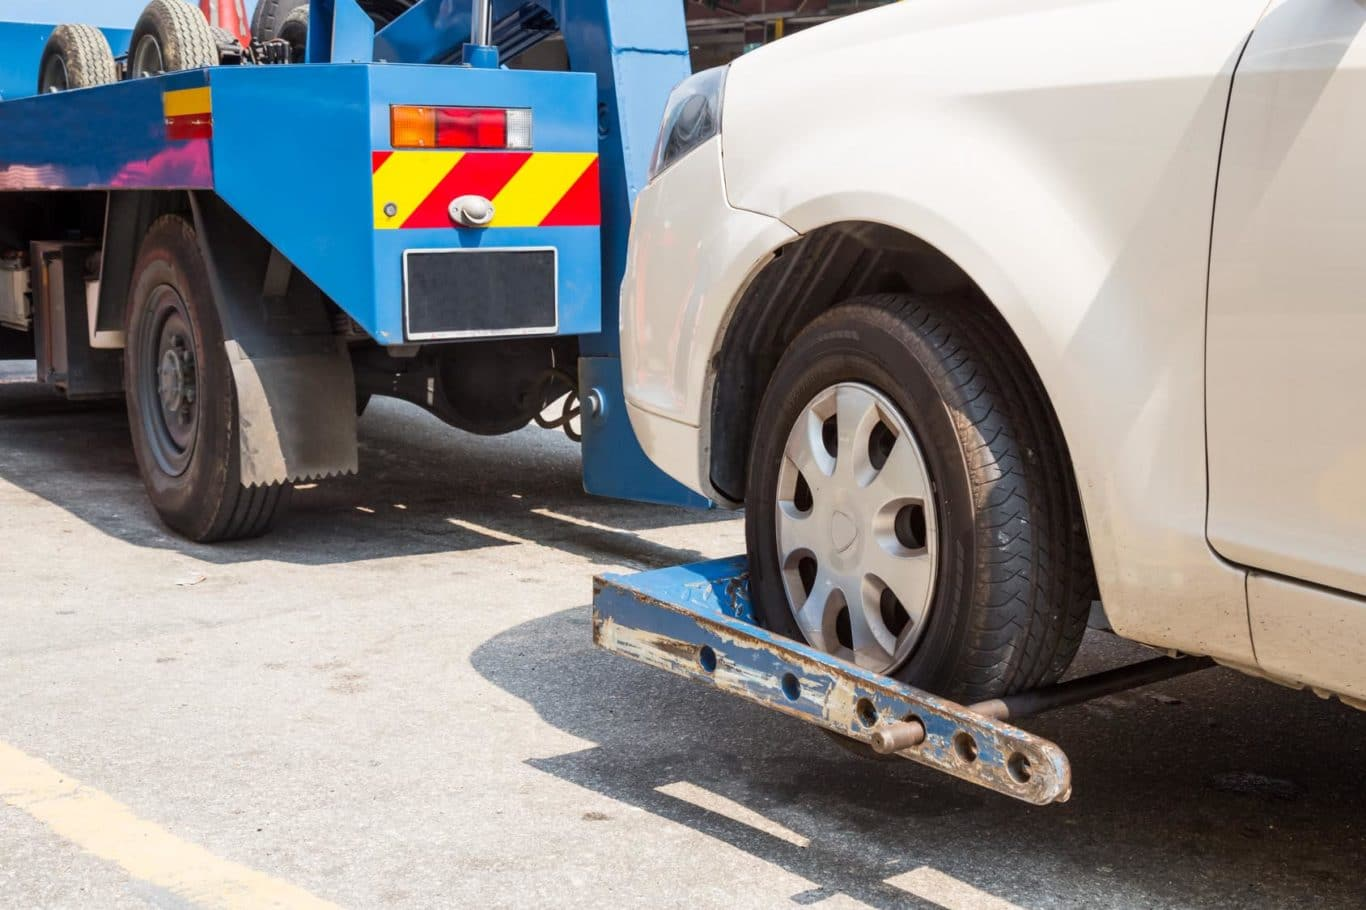 Damastown expert Towing services